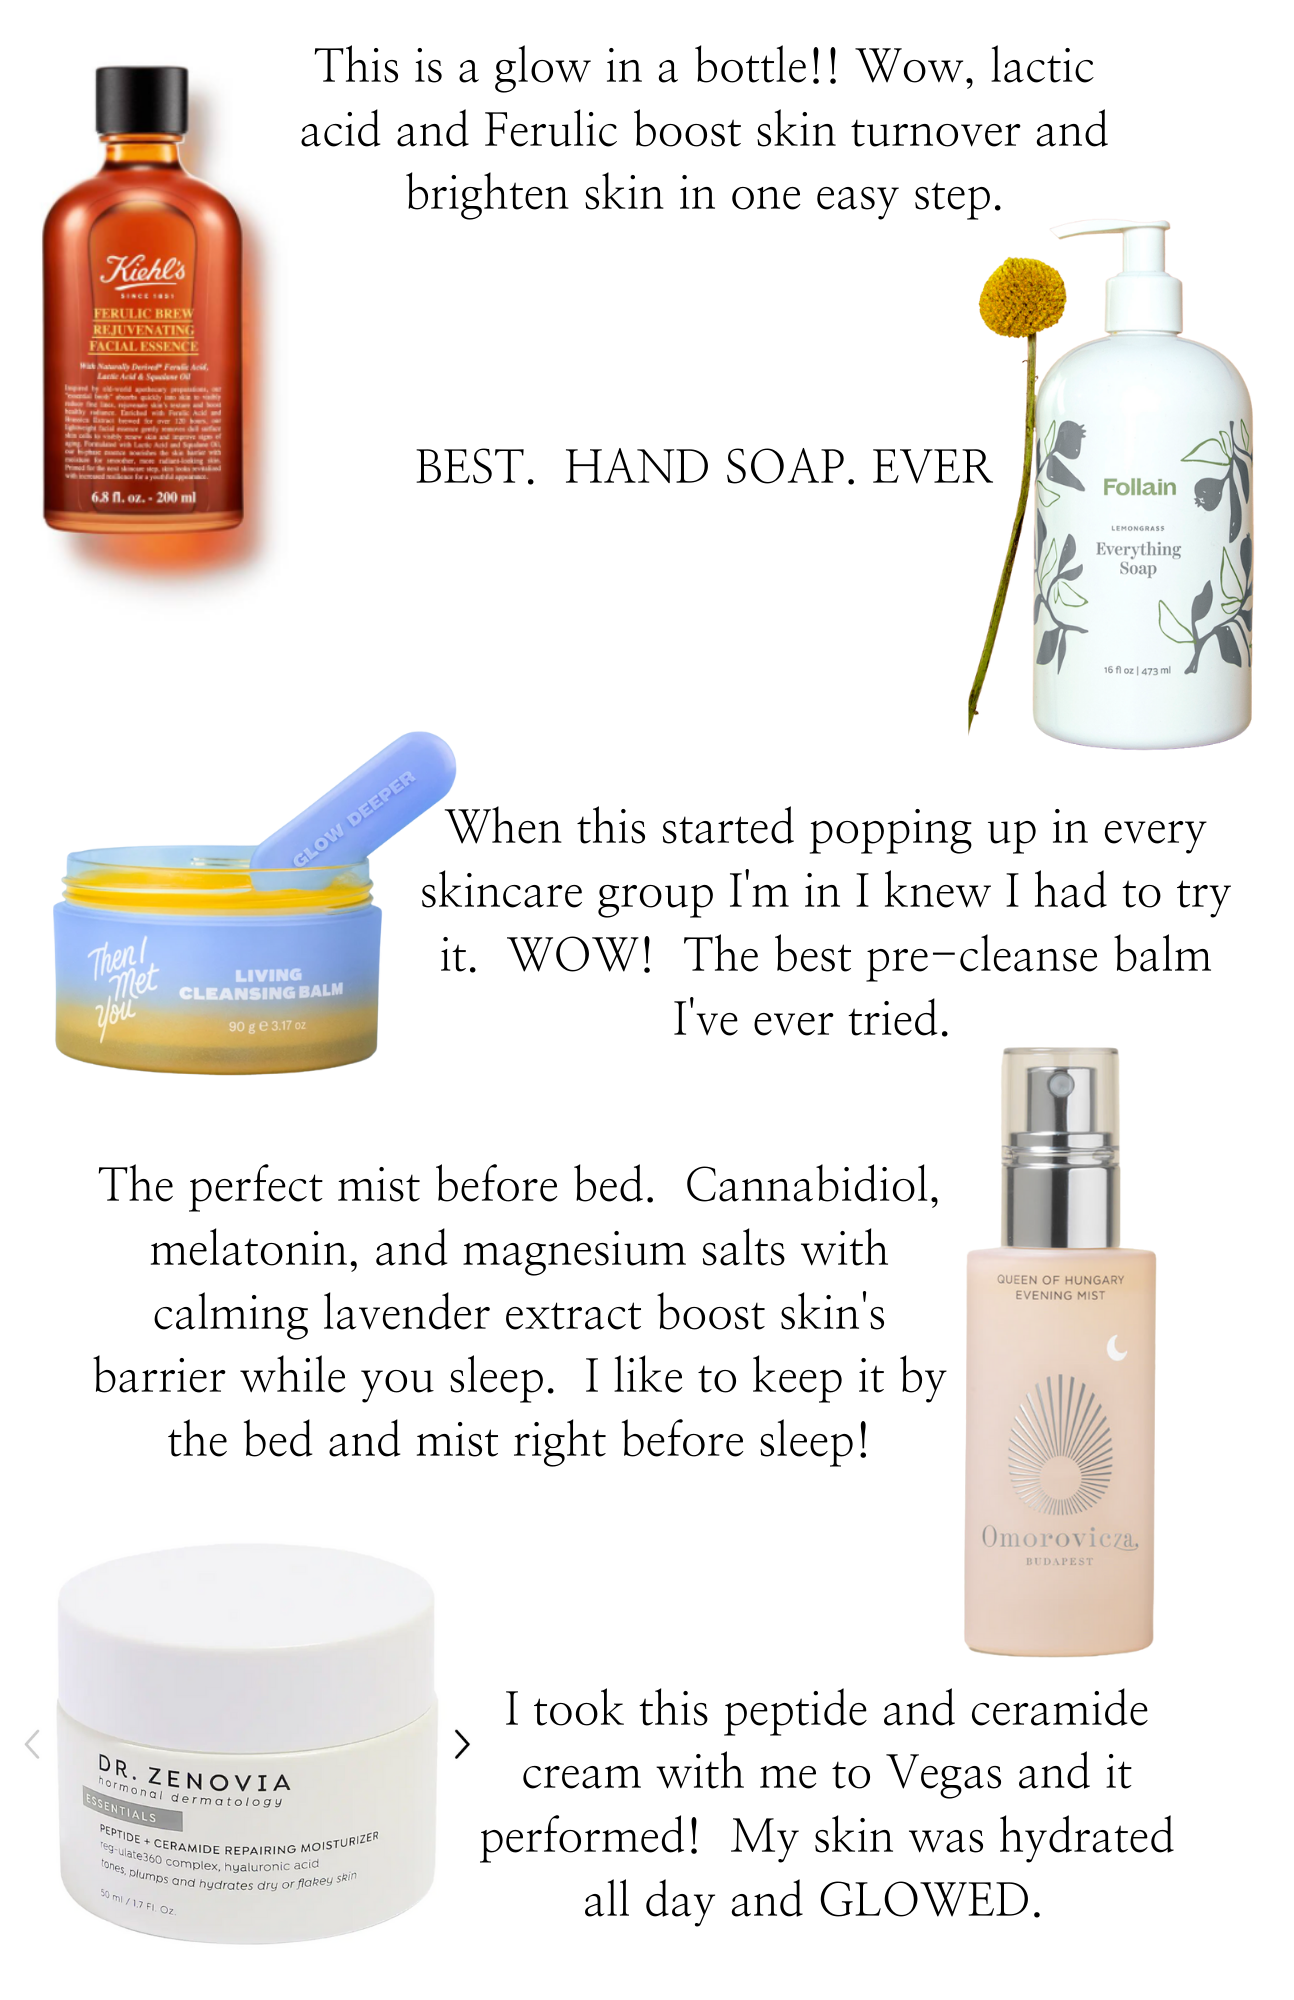 Best Beauty Finds by popular Monterey beauty blog, Haute Beauty Guide: collage image of Kiehl's facial essence, Follain everything soap, Living Cleansing Balm, Omoroviera cannabidiol melatonin, and Dr. Zenovia peptide moisturizer.